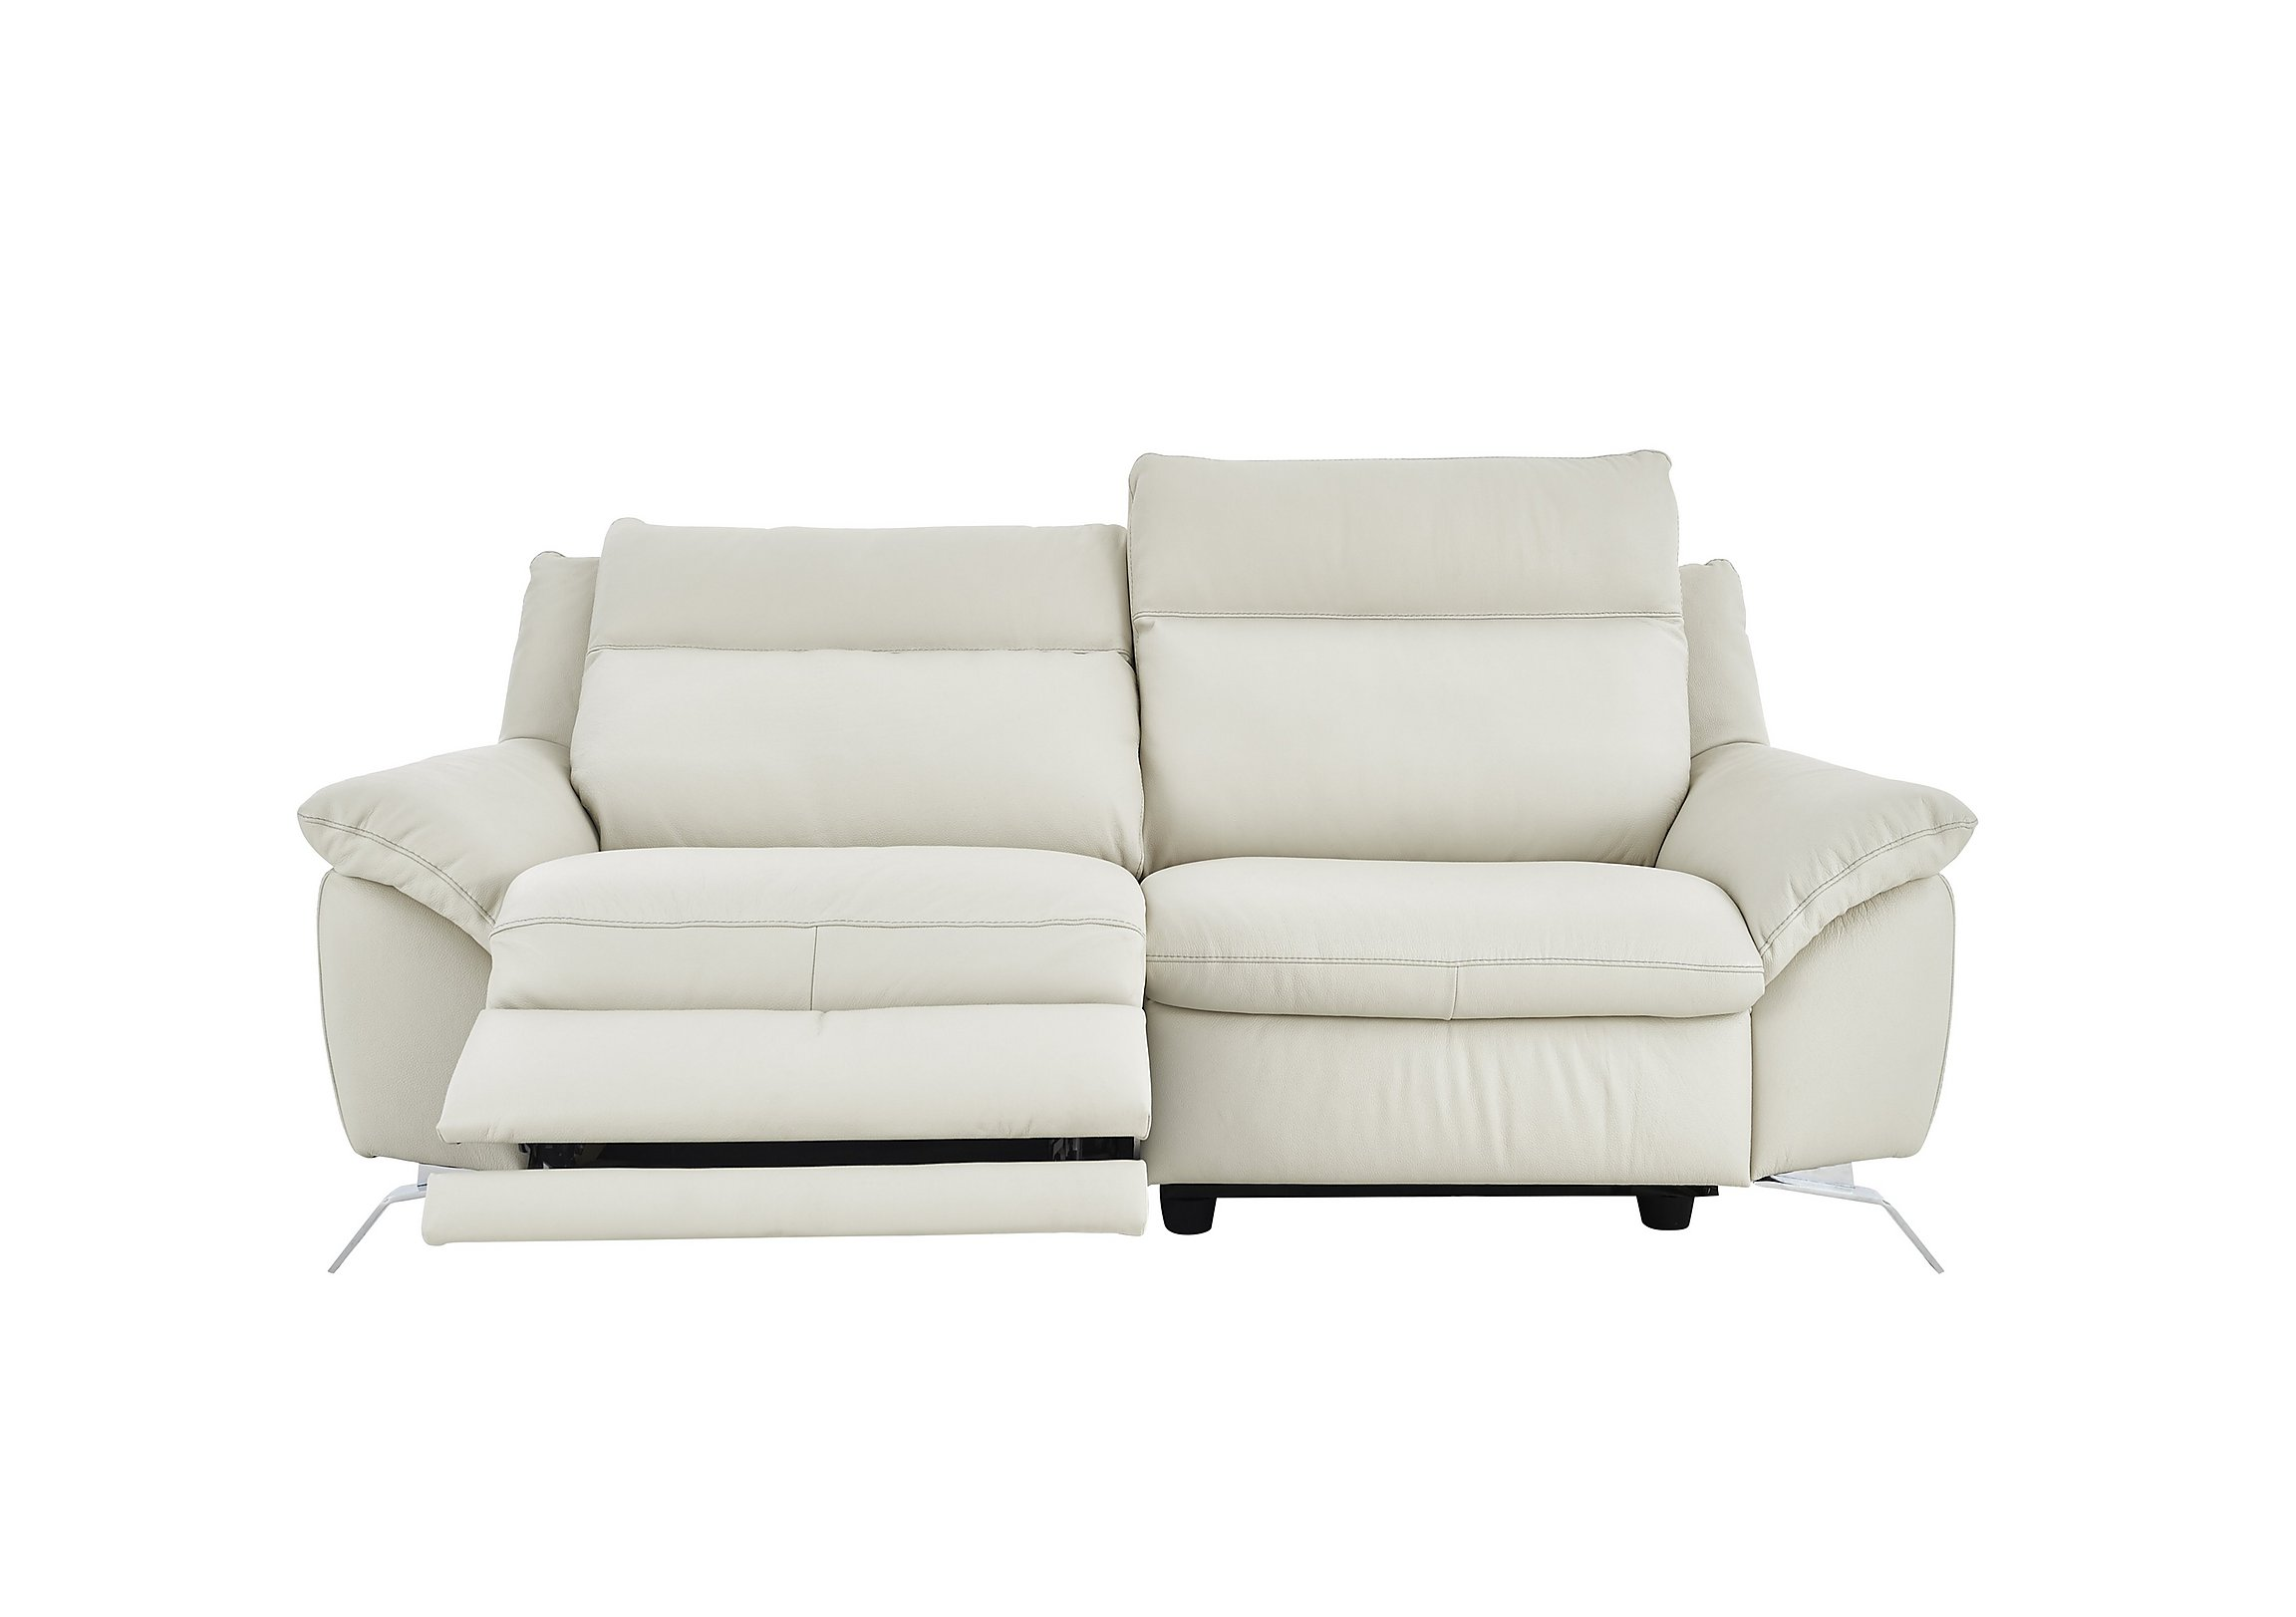 chair sofa sectional bed natuzzi corner sofas recliner leather